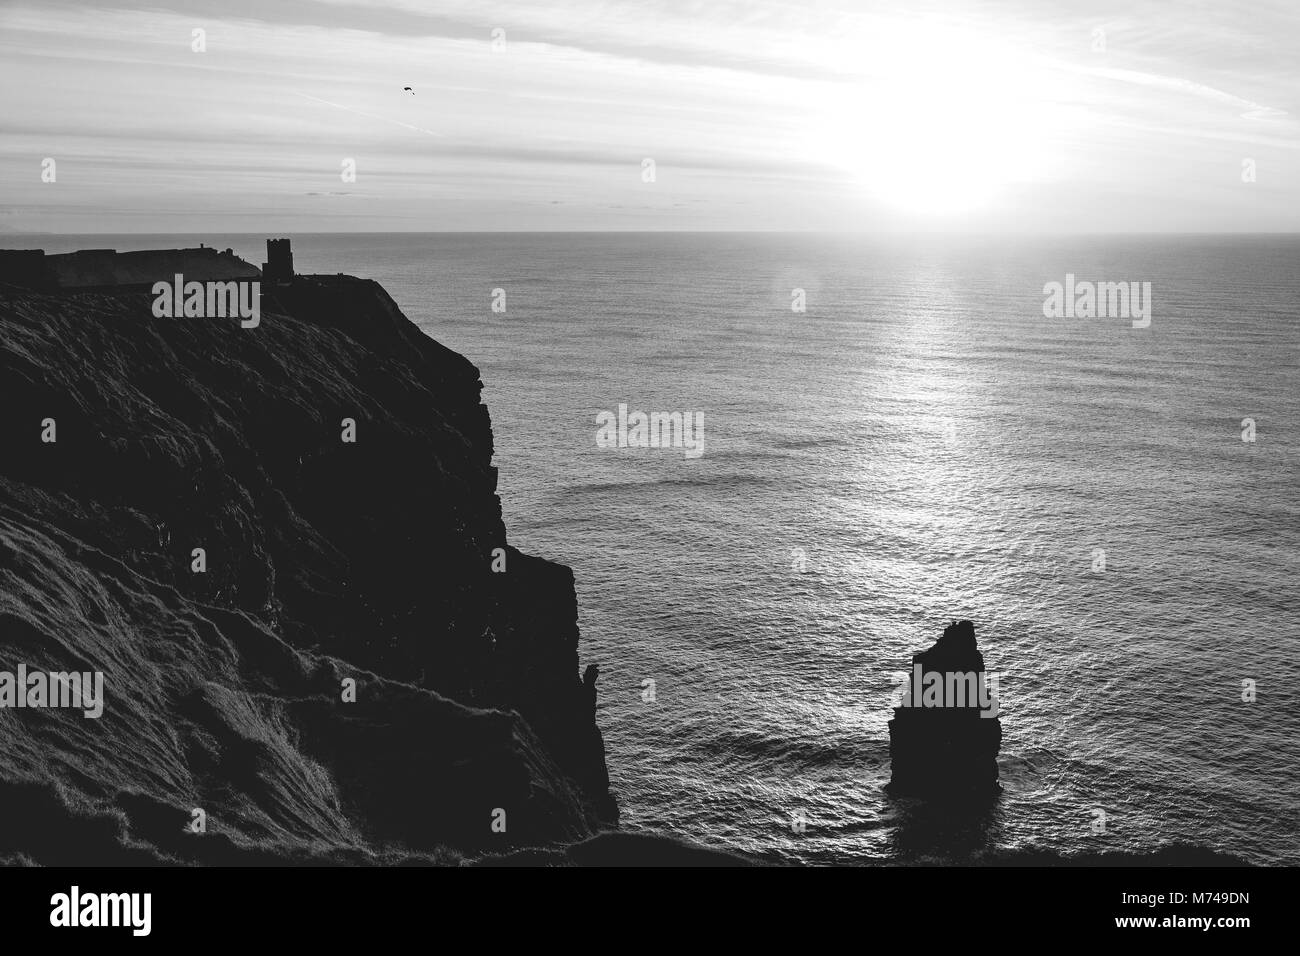 Black and white picture of the world famous cliffs of moher in county ireland. beautiful scenic irish countryside - Stock Image